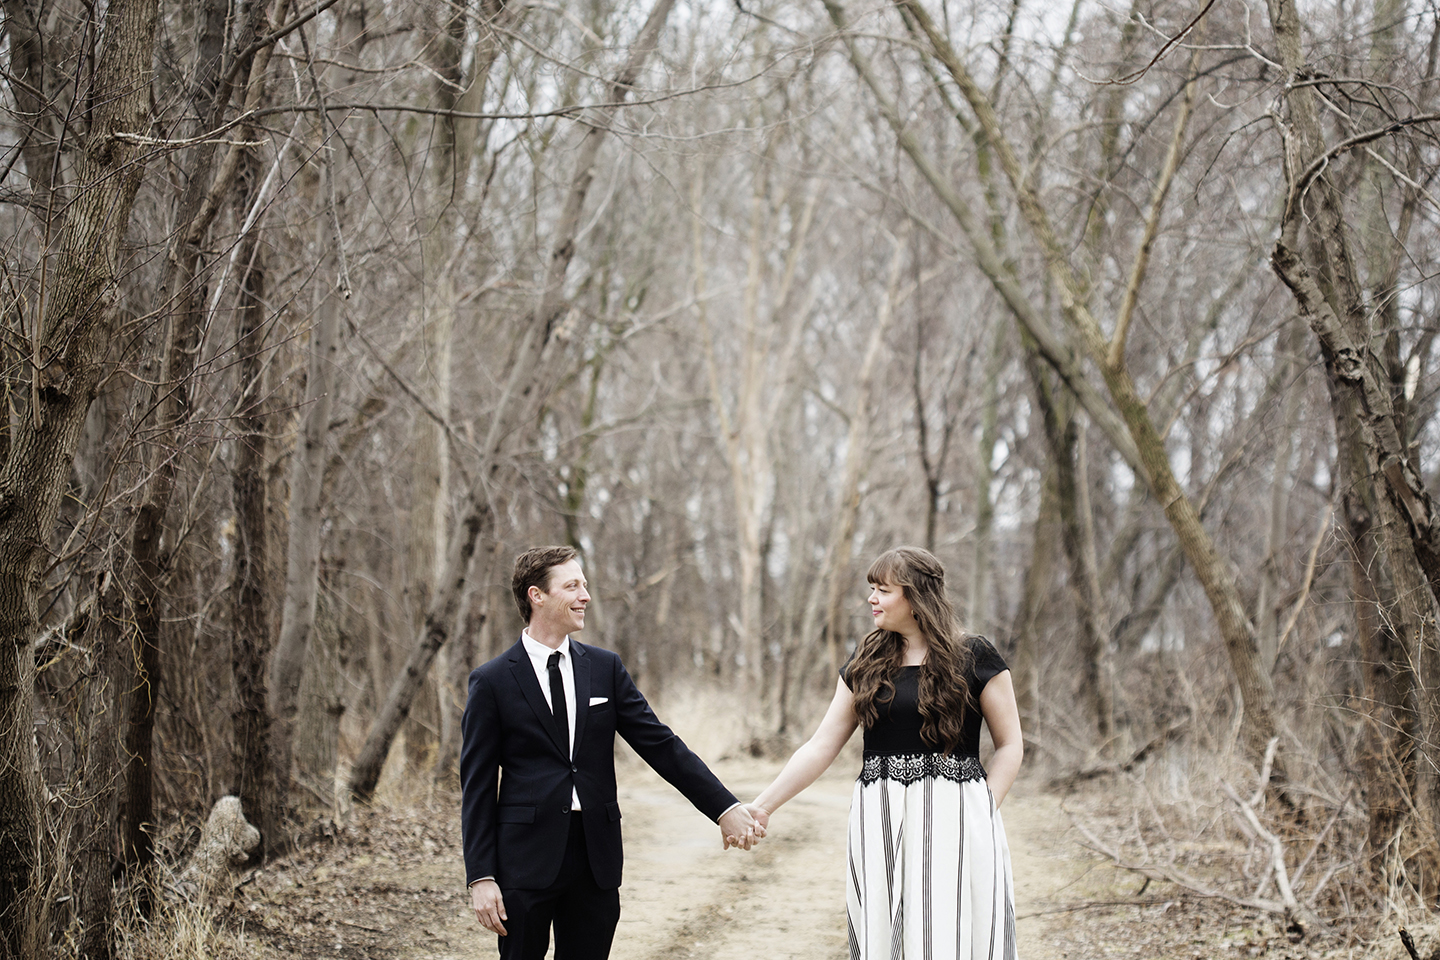 Bauhaus Brewery Wedding Photos | Photography by Photogen Inc. | Eliesa Johnson | Based in Minneapolis, Minnesota